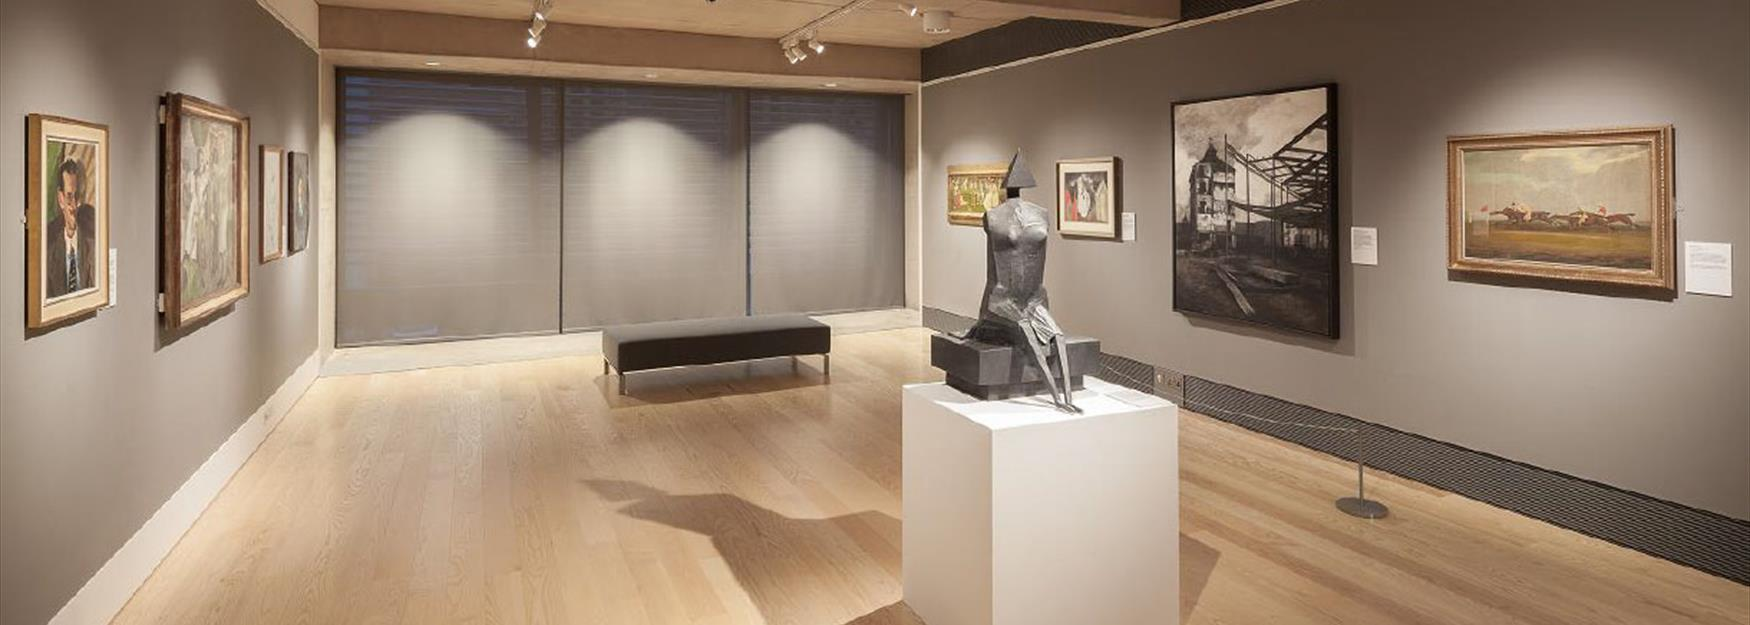 One of the many galleries within The Wilson Art Gallery and Museum in Cheltenham